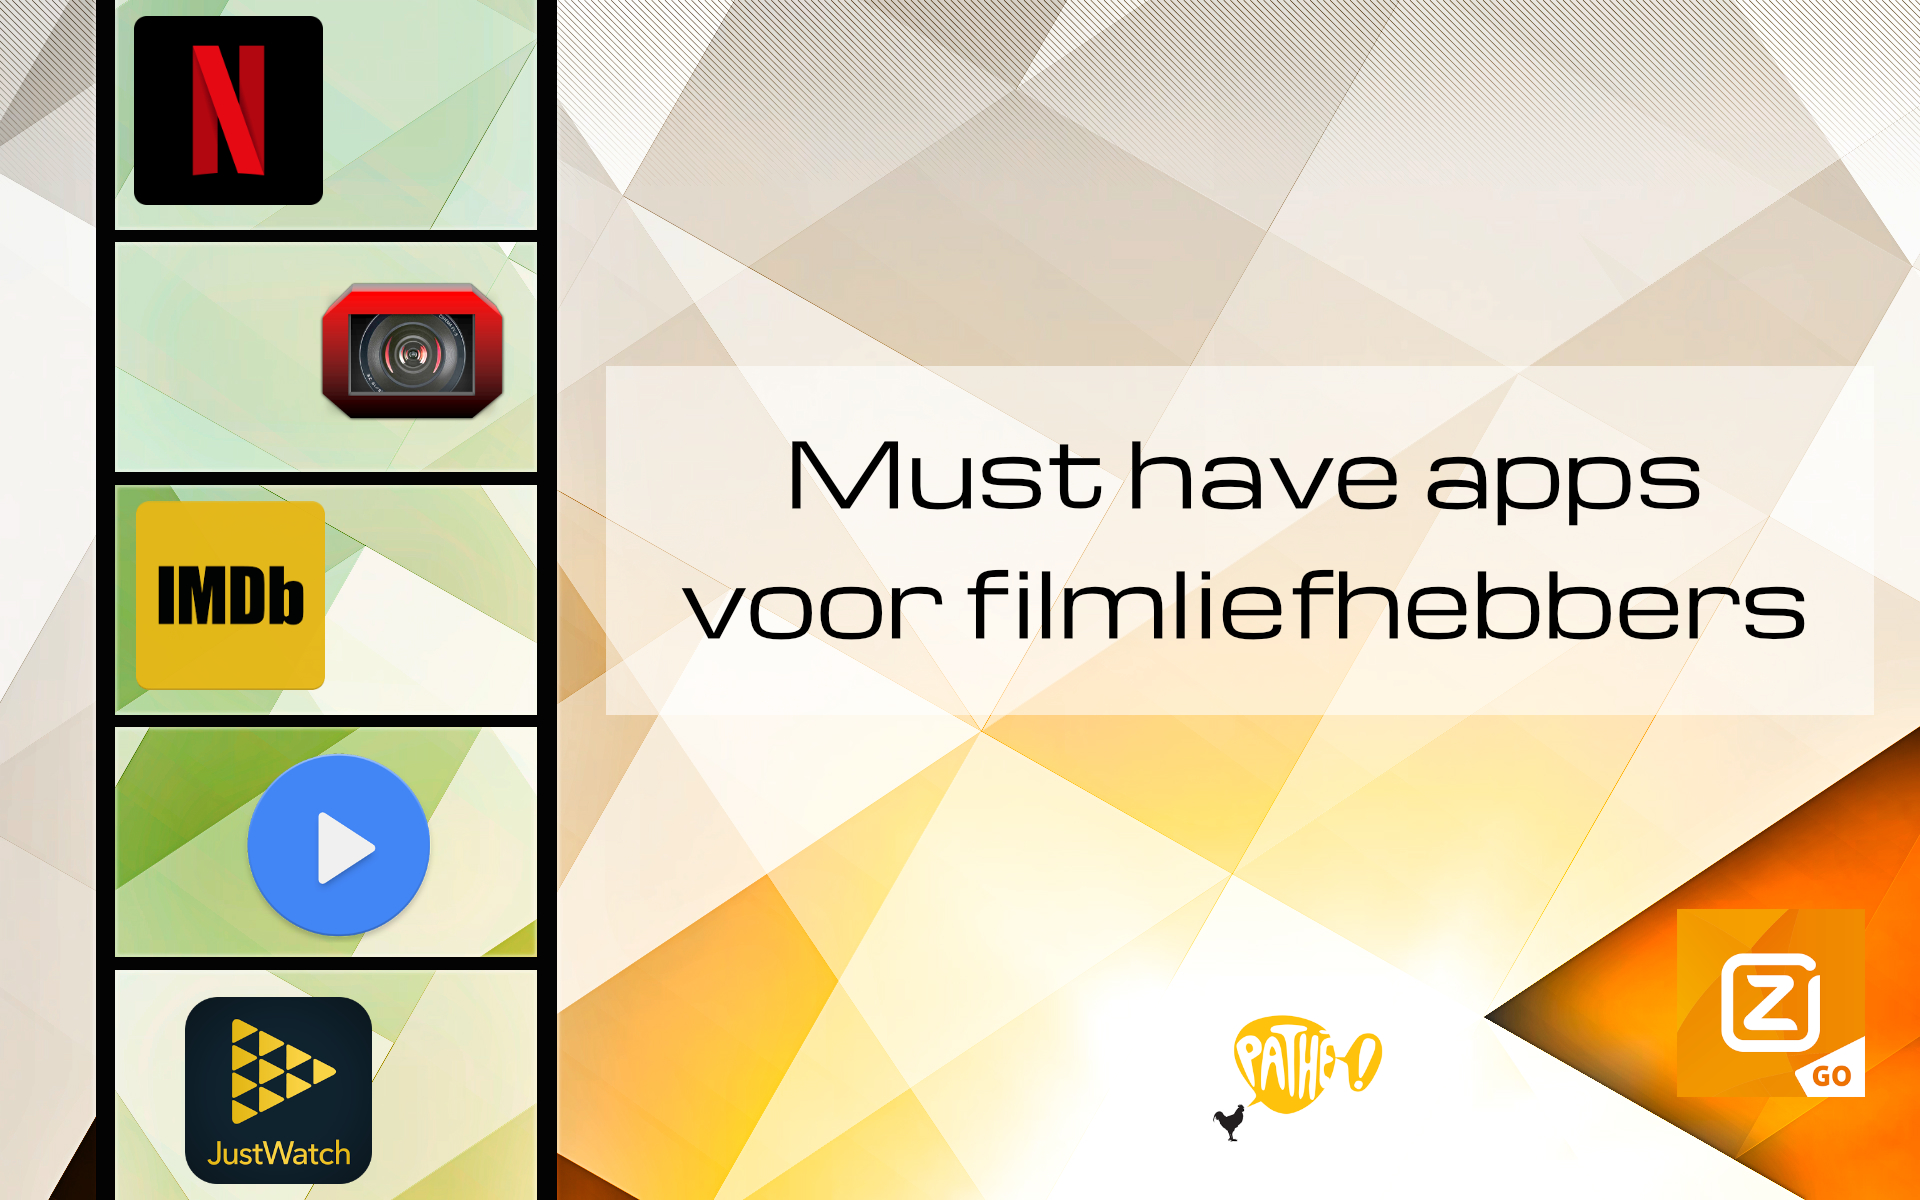 Must have apps voor films filmliefhebber